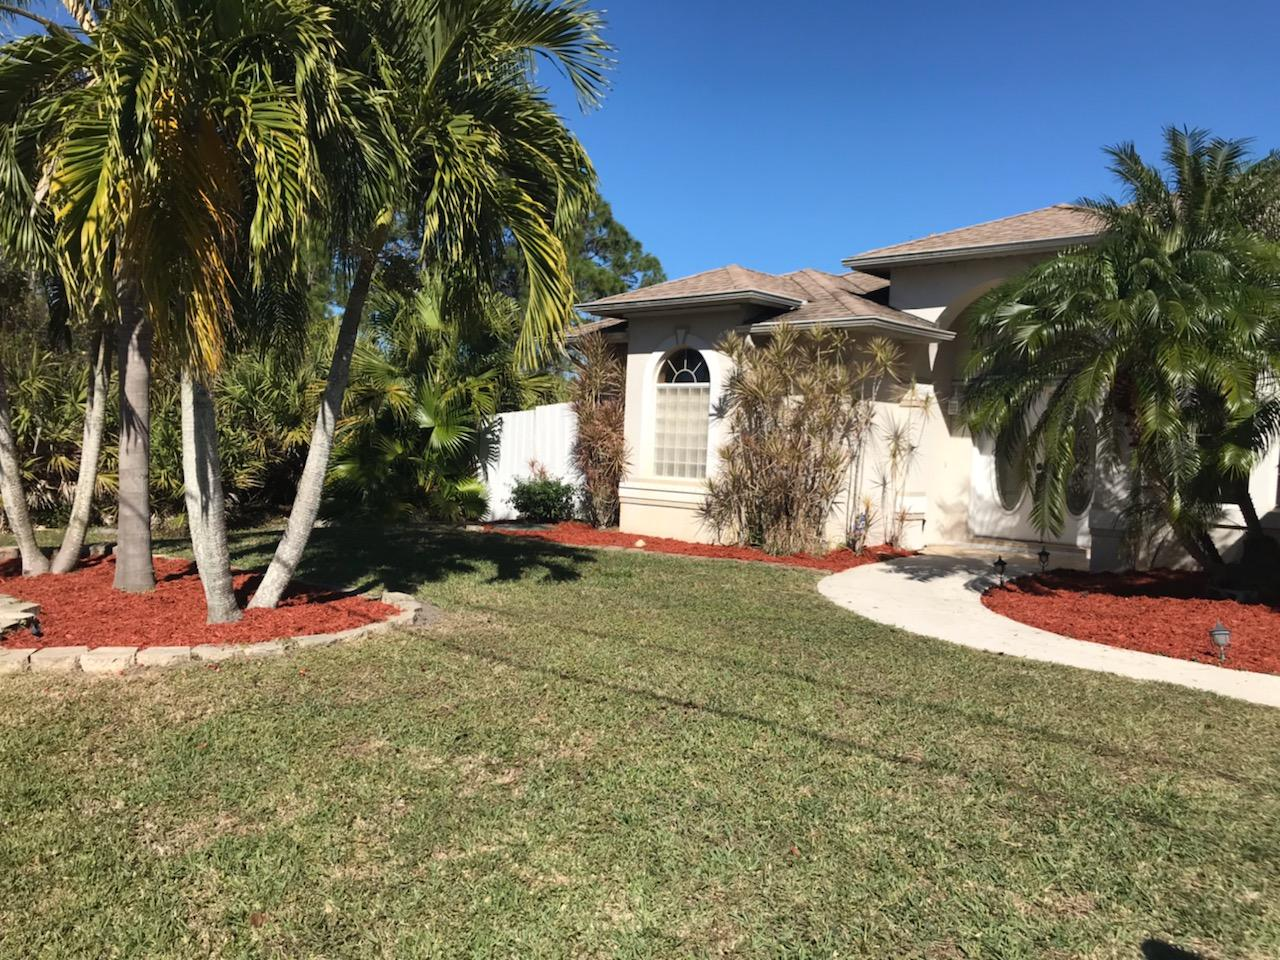 6416 NW Friendly Circle - Port St Lucie, Florida